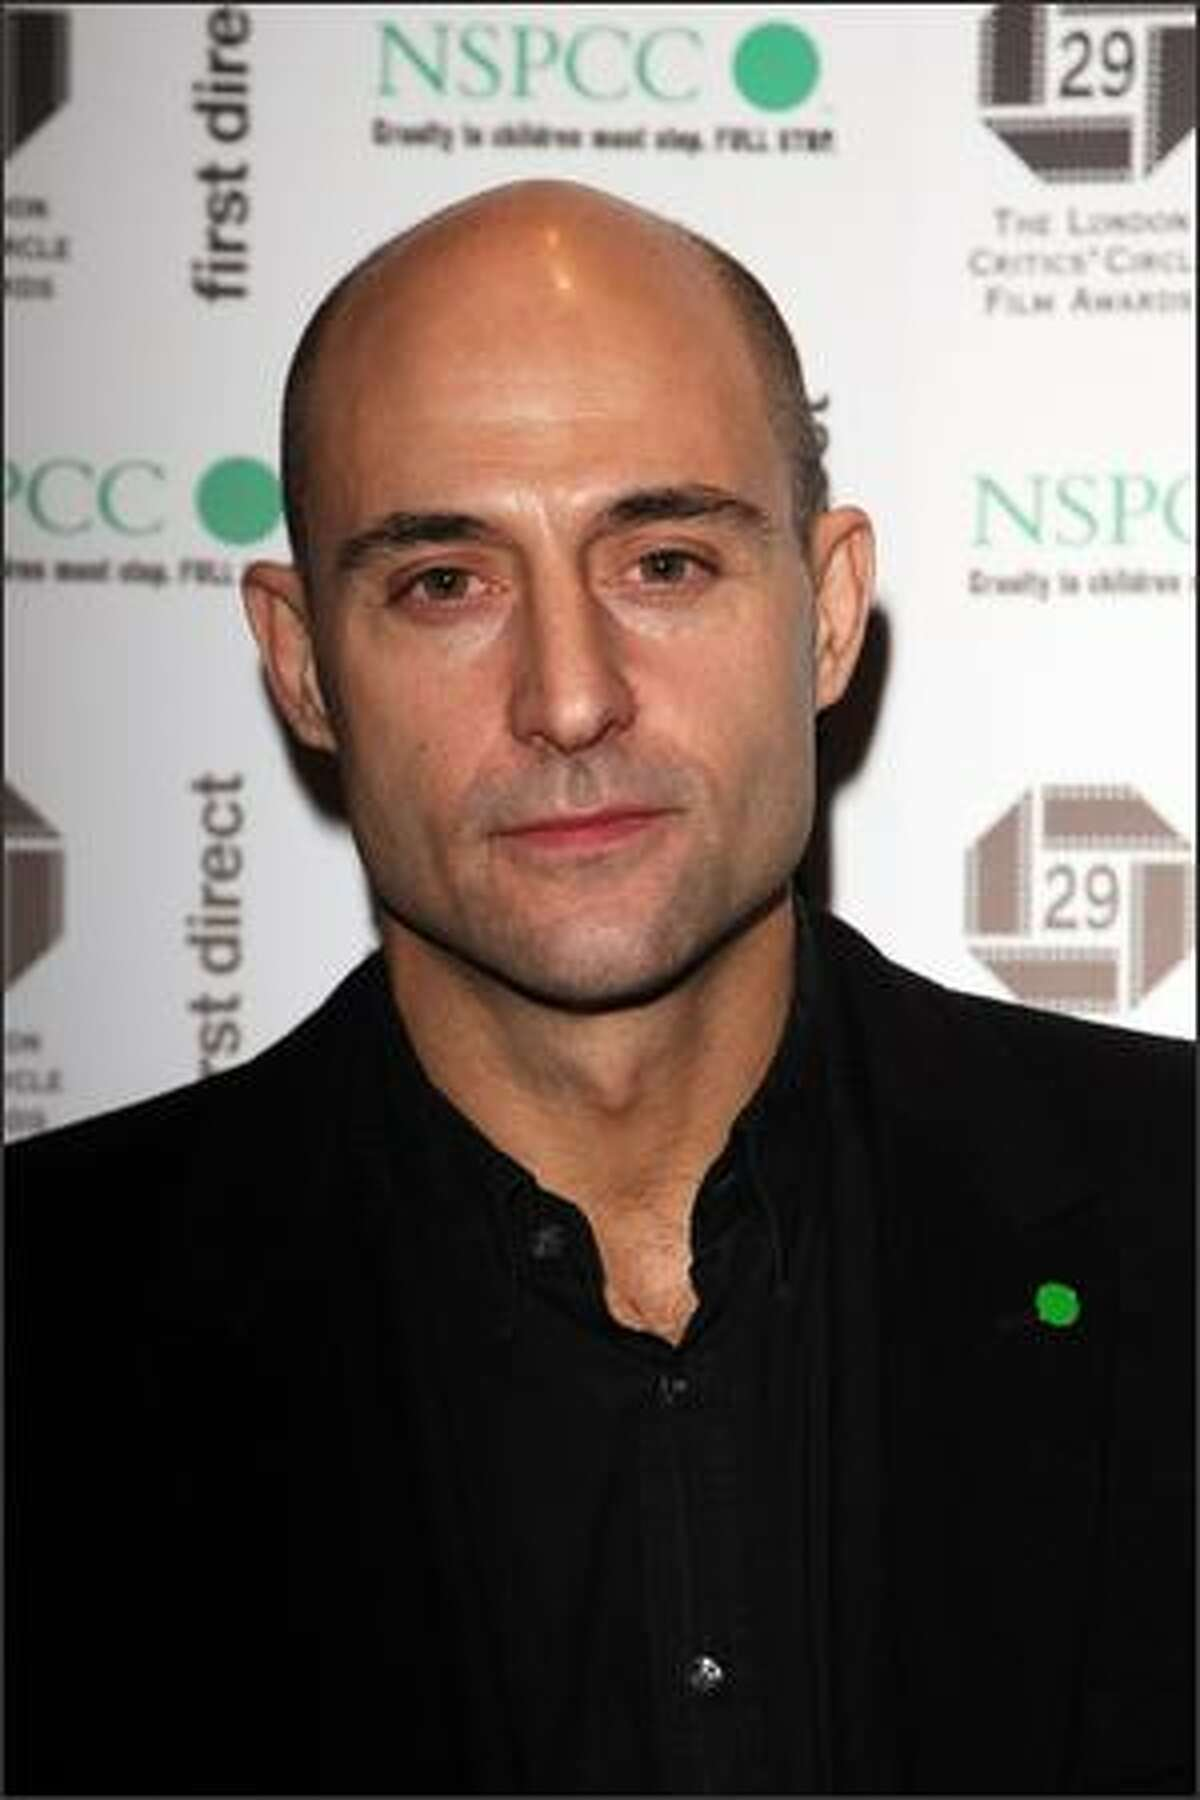 Actor Mark Strong attends The London Critics' Circle Film Awards 2009 at the Grosvenor House Hotel on Monday in London.